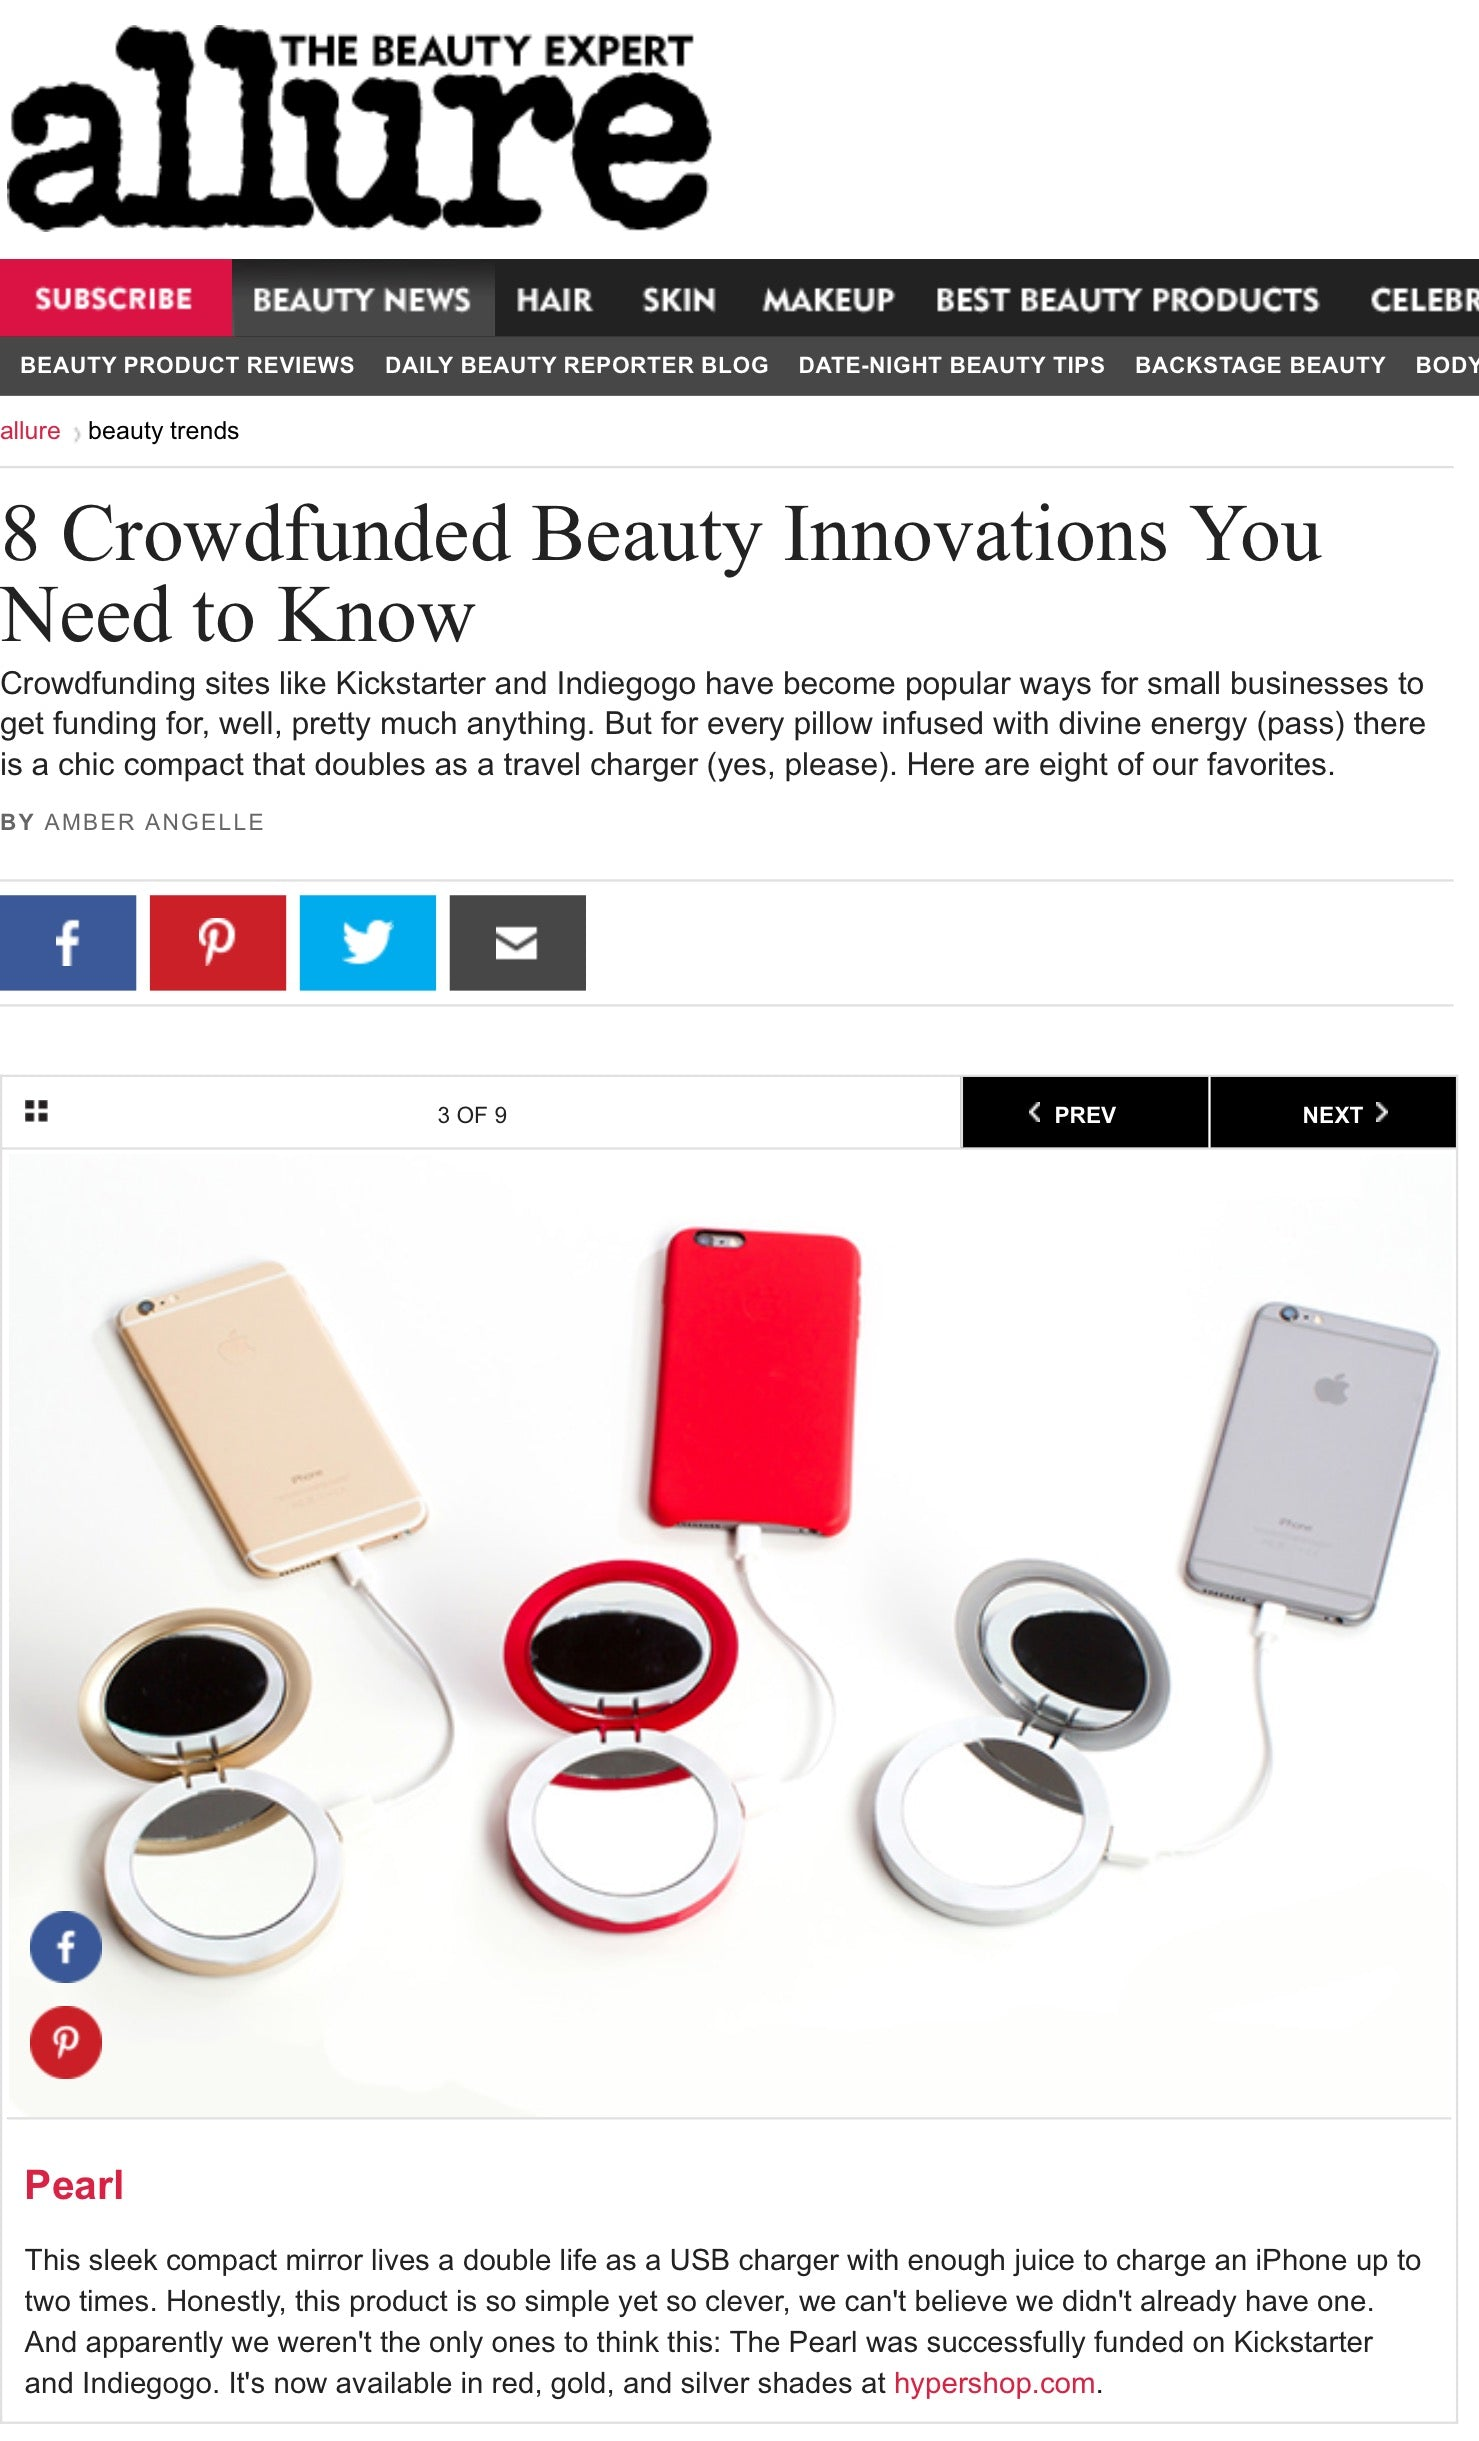 "Allure says Pearl is one of the ""Crowdfunded Beauty Innovations You Need to Know"""